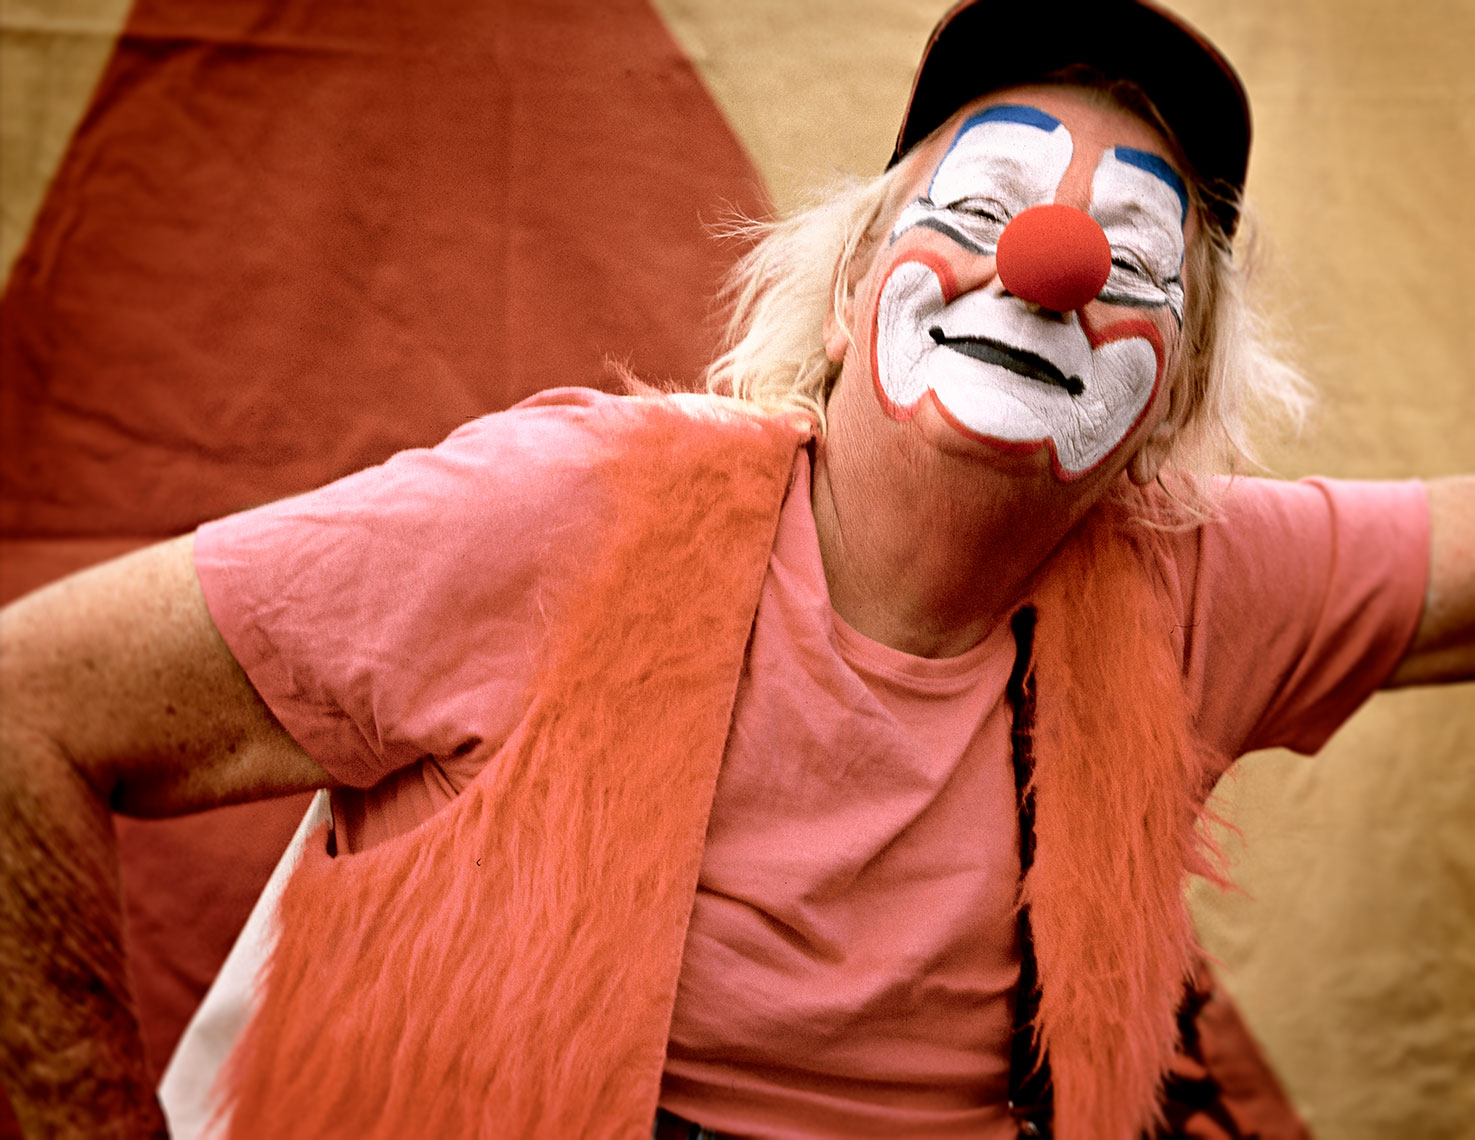 Photography, Photo Illustration and Retouching on Clown-Sarasota-Florida